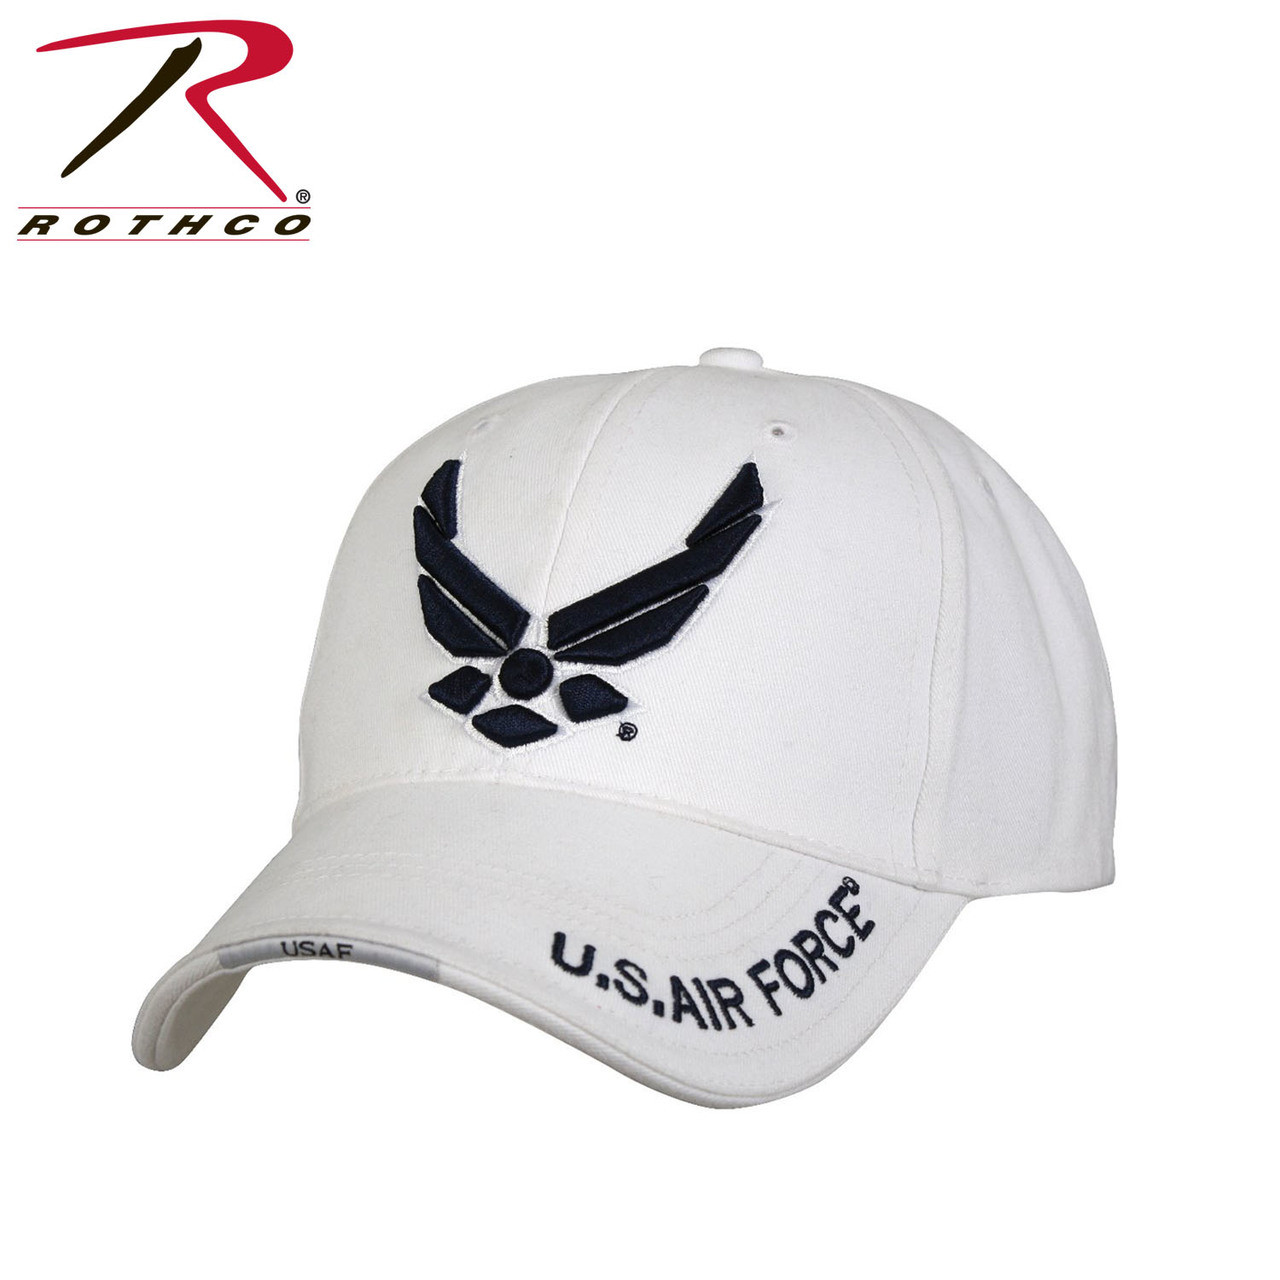 2d670825293 Rothco Deluxe U.S. Air Force Wing Low Profile Insignia Cap (Item  9154) ...